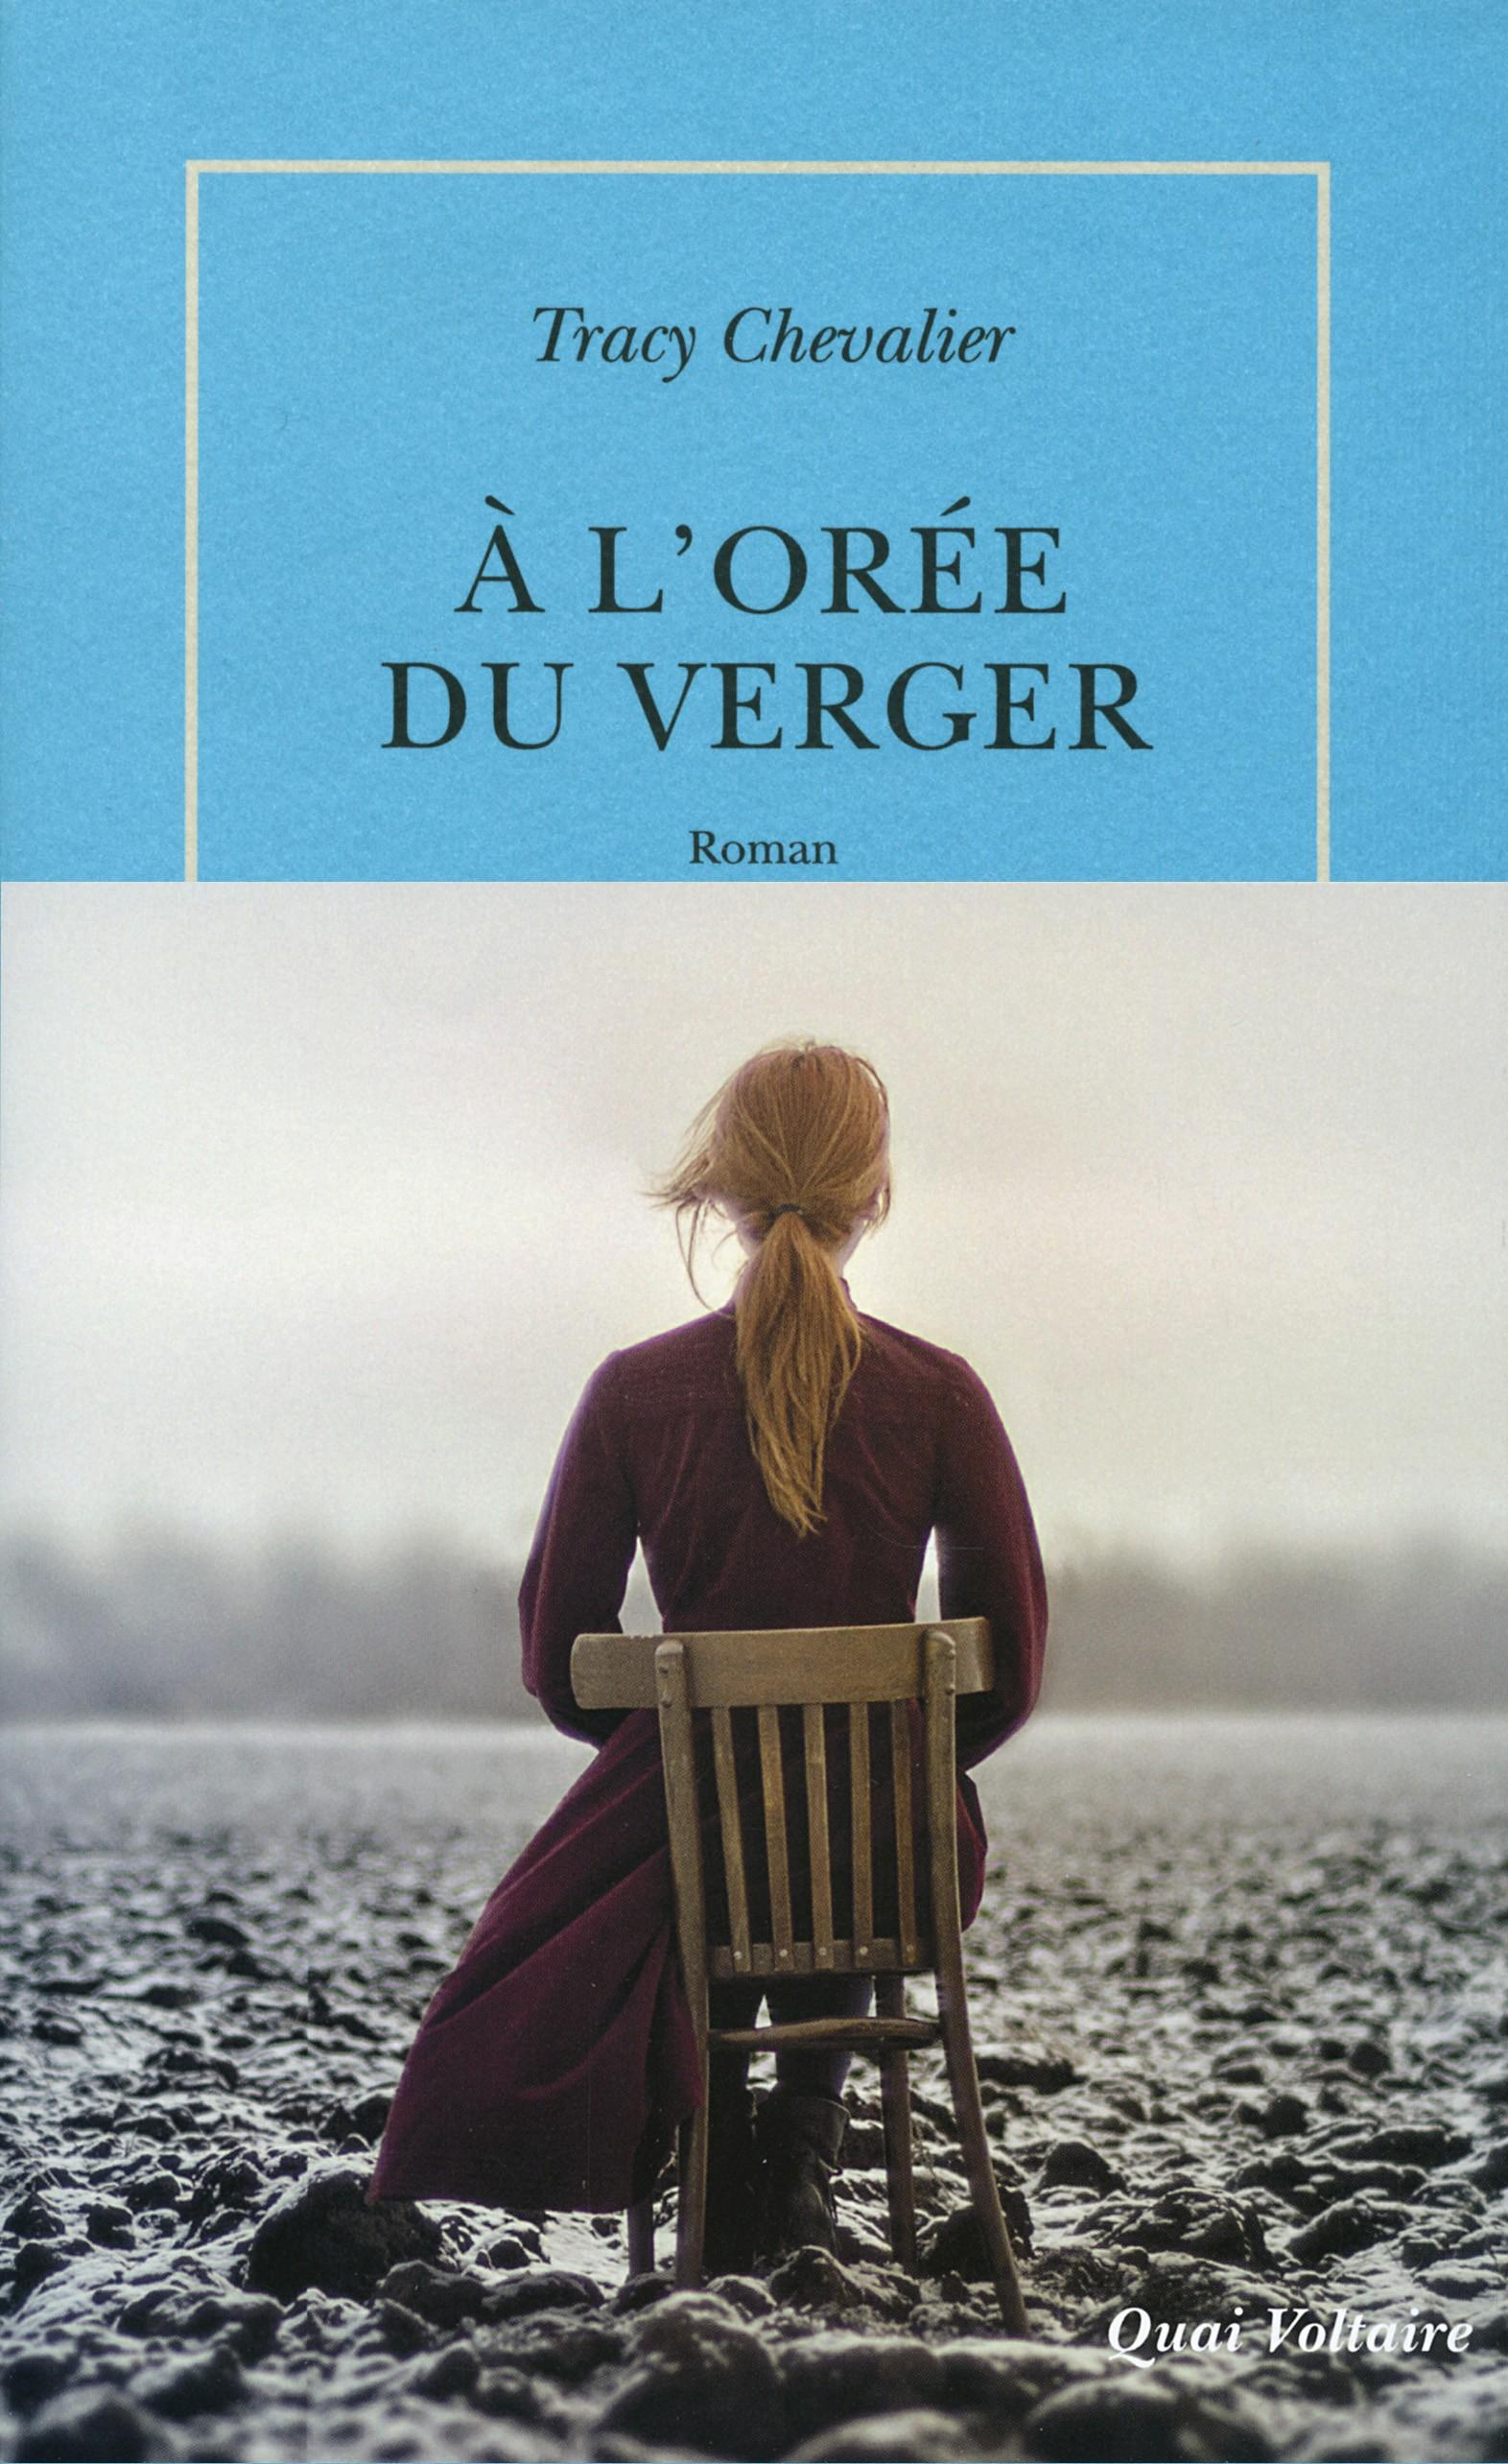 A l'orée du verger